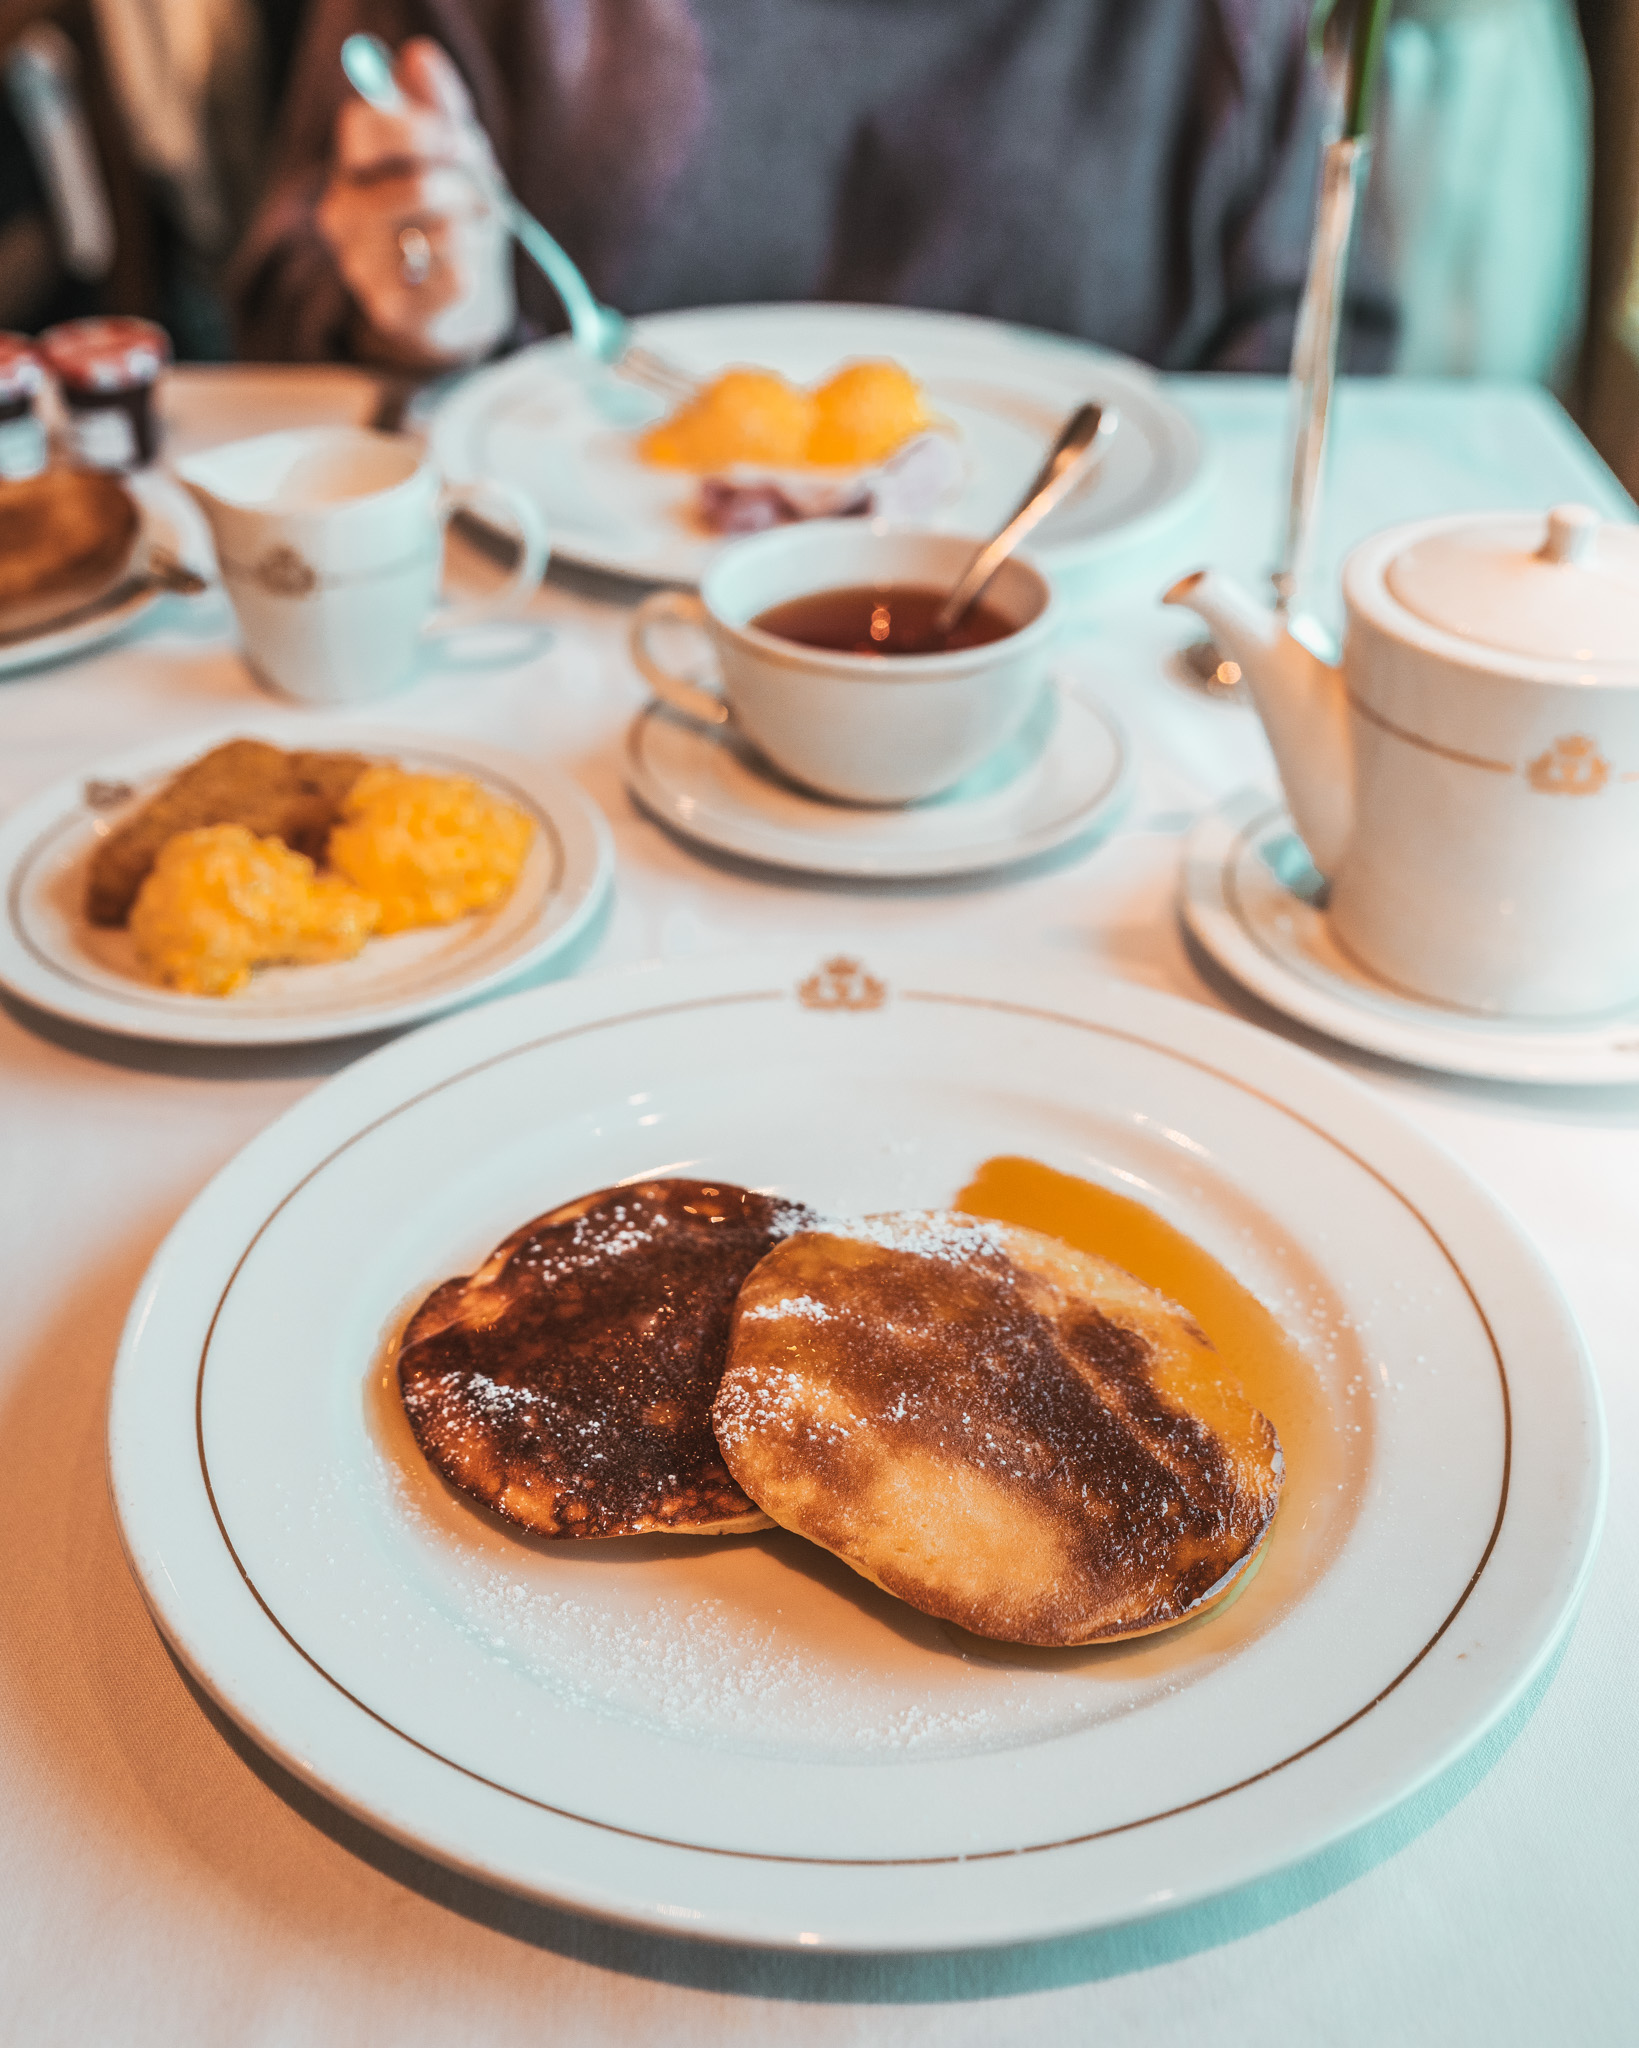 Britannia dining room breakfast // Transatlantic Cruising on the Cunard Queen Mary 2 #readysetjetset